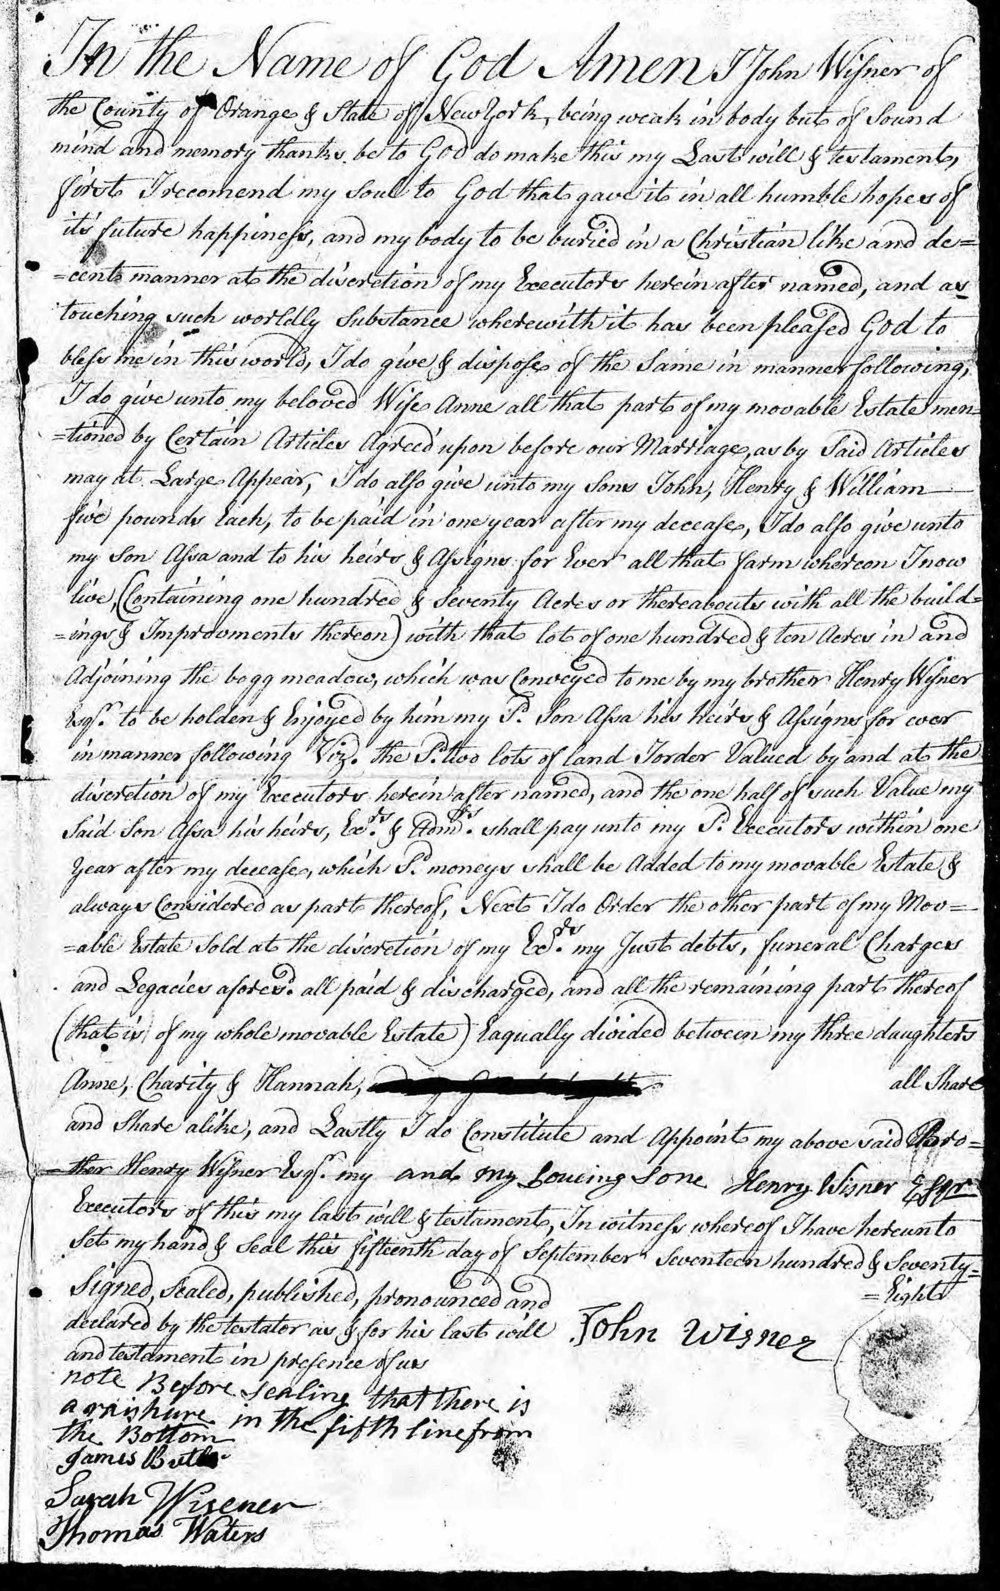 Surrogate's Court, Albany, New York.   Probate Record for John Wisner. 15 Sep. 1778. New York State Archives.